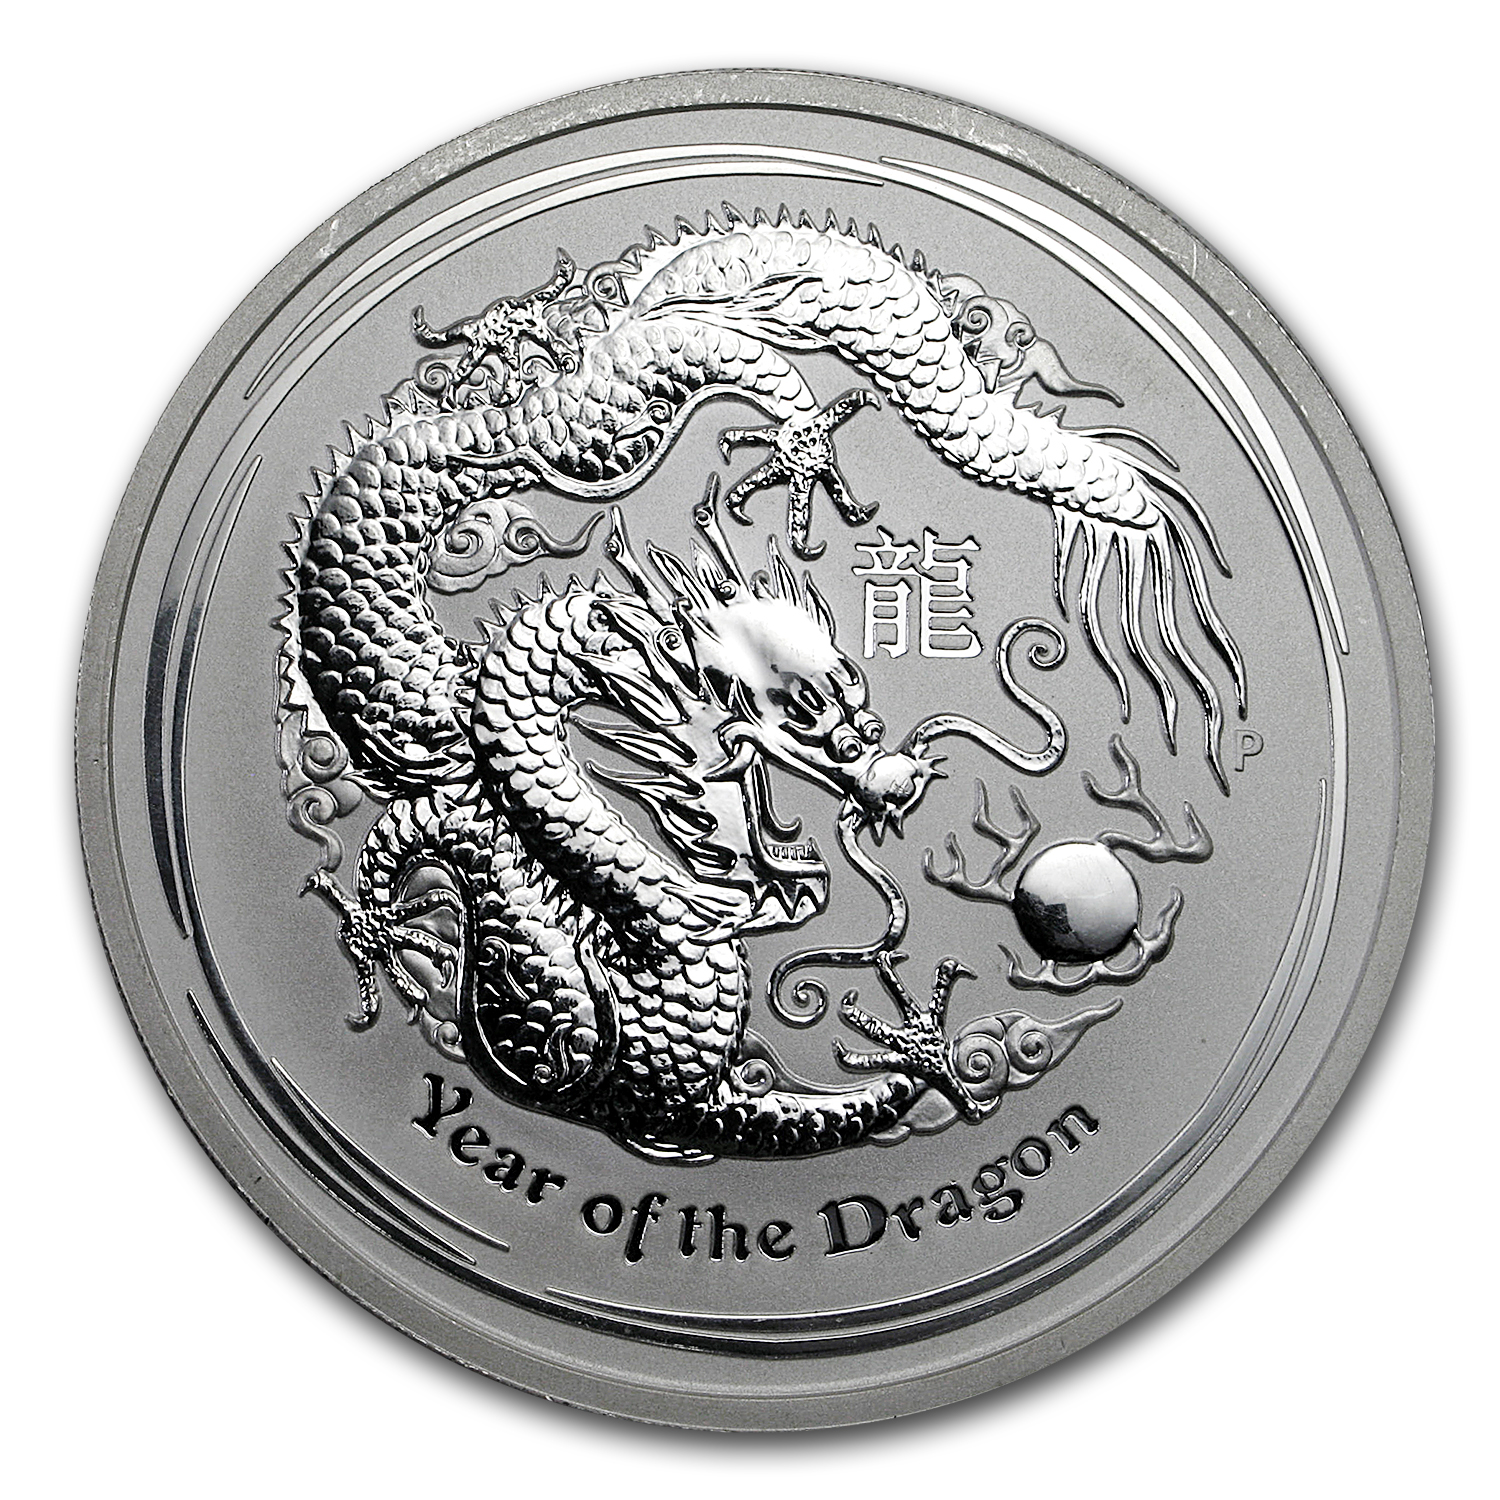 2012 Australia 5 oz Silver Year of the Dragon (Abrasions)